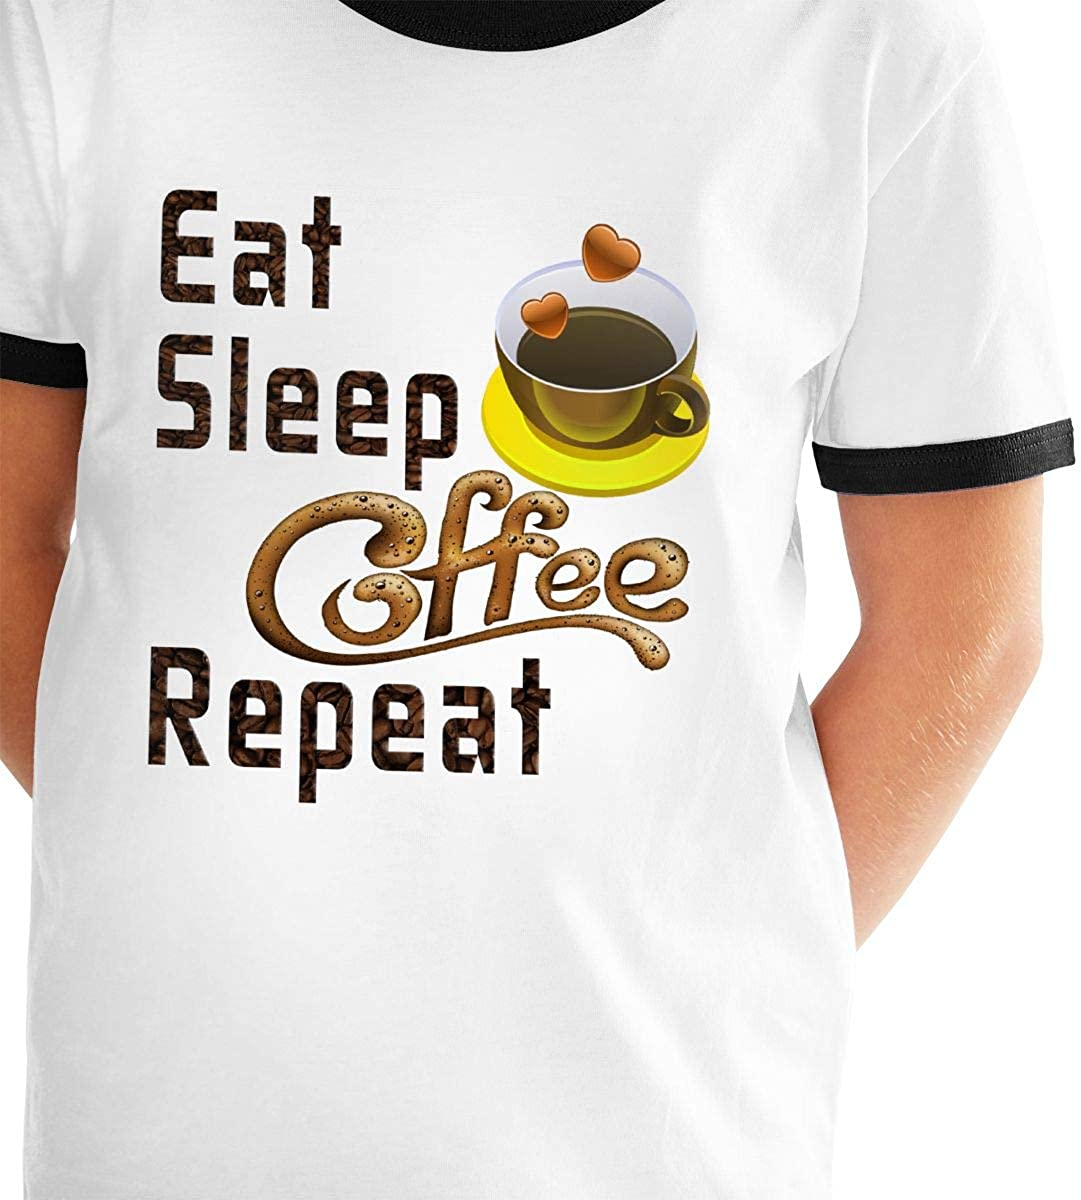 Youth Printed Boys Girls Eat Sleep Coffee Repeat-2 Teens Short Sleeve T-Shirt Tees Shirts Tops Sport